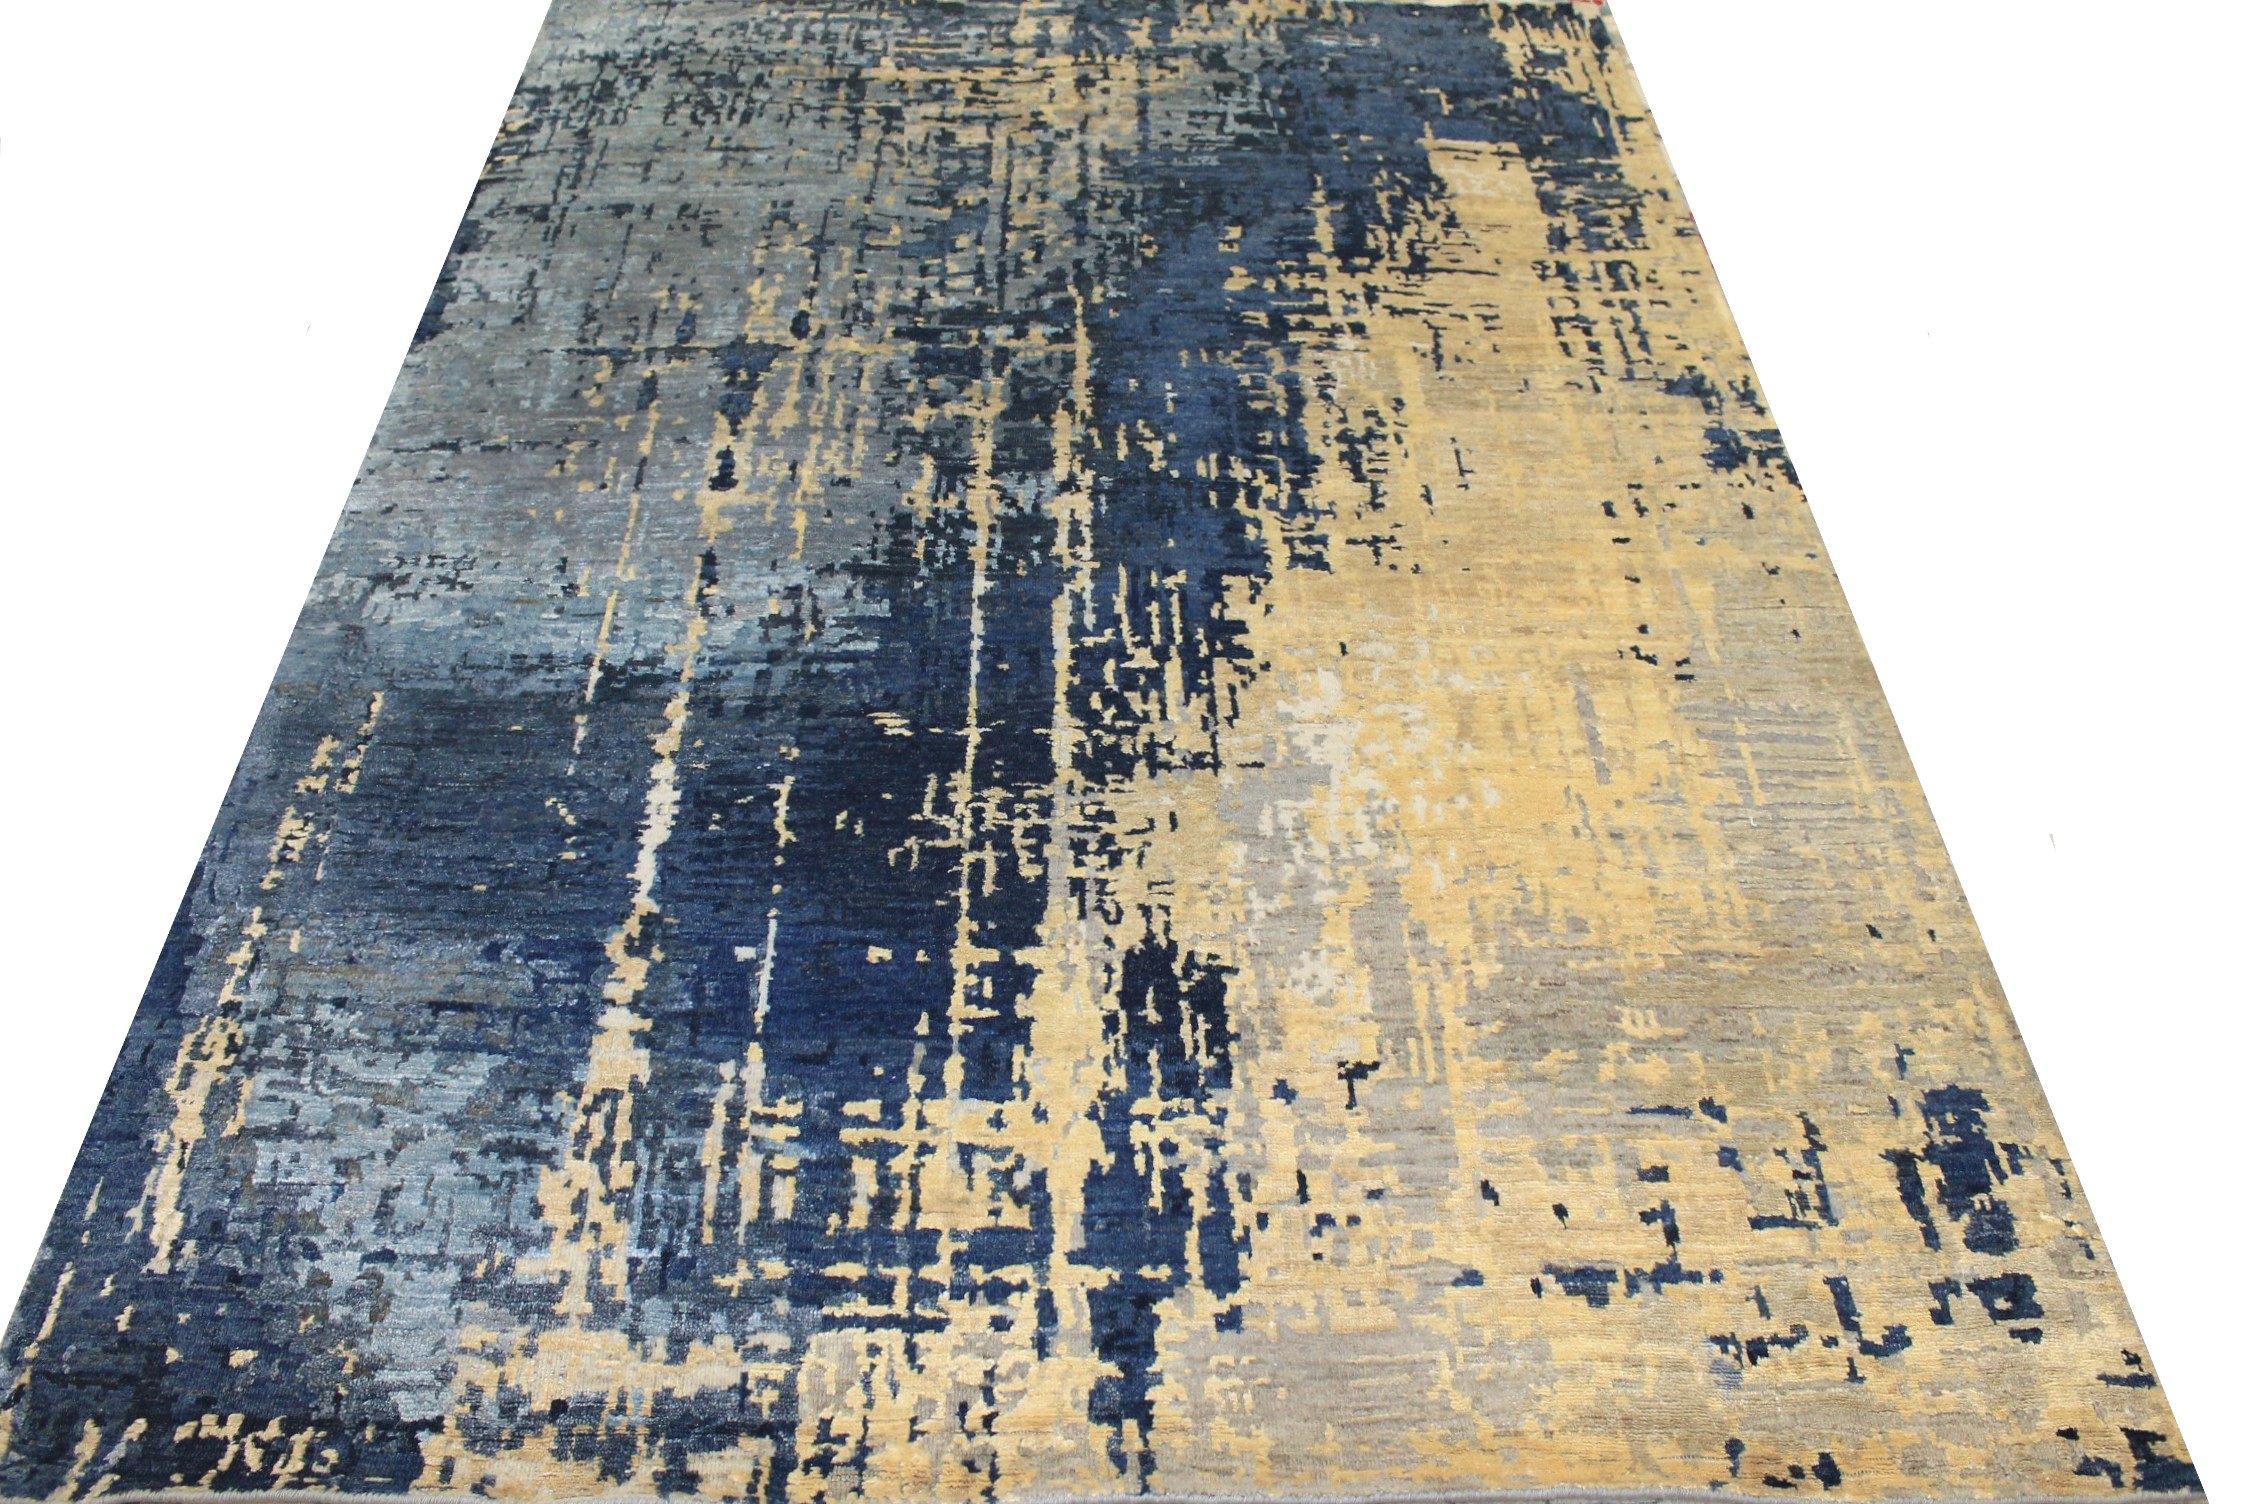 5x7/8 Modern Hand Knotted Wool & Viscose Area Rug - MR025459